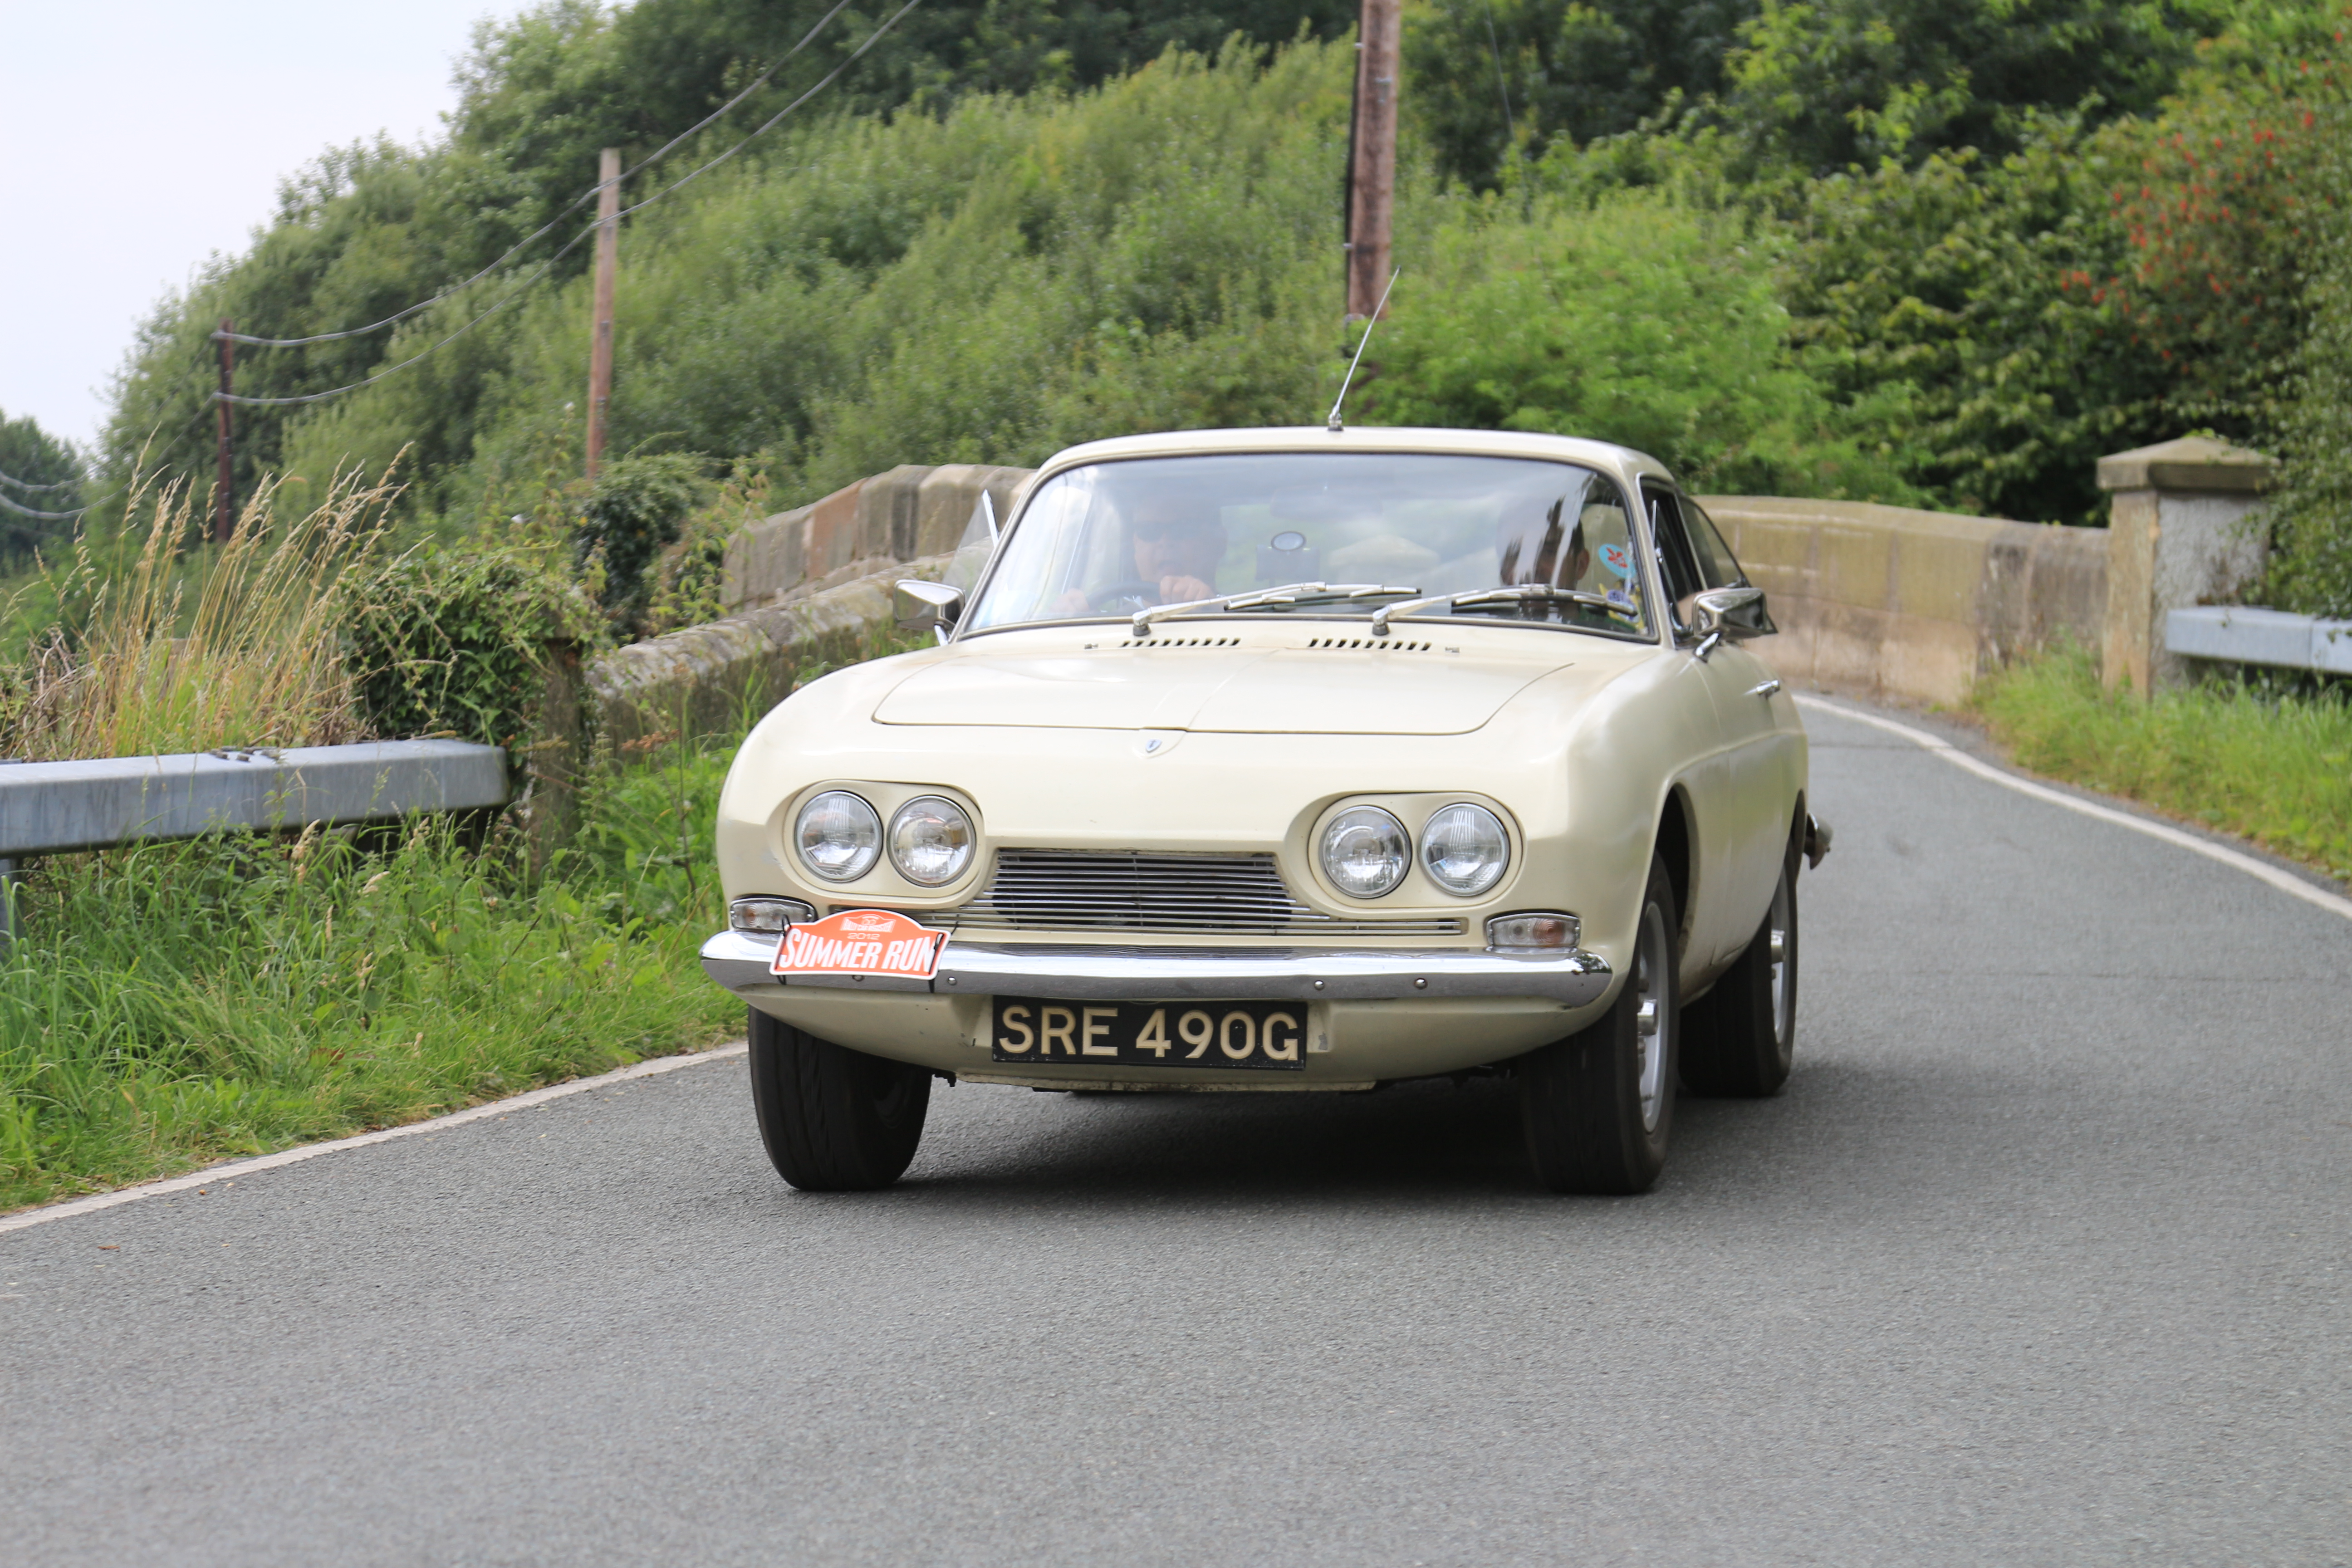 Reliant Scimitar GT - HRCR Summer Run 2012 | Flickr - Photo Sharing!